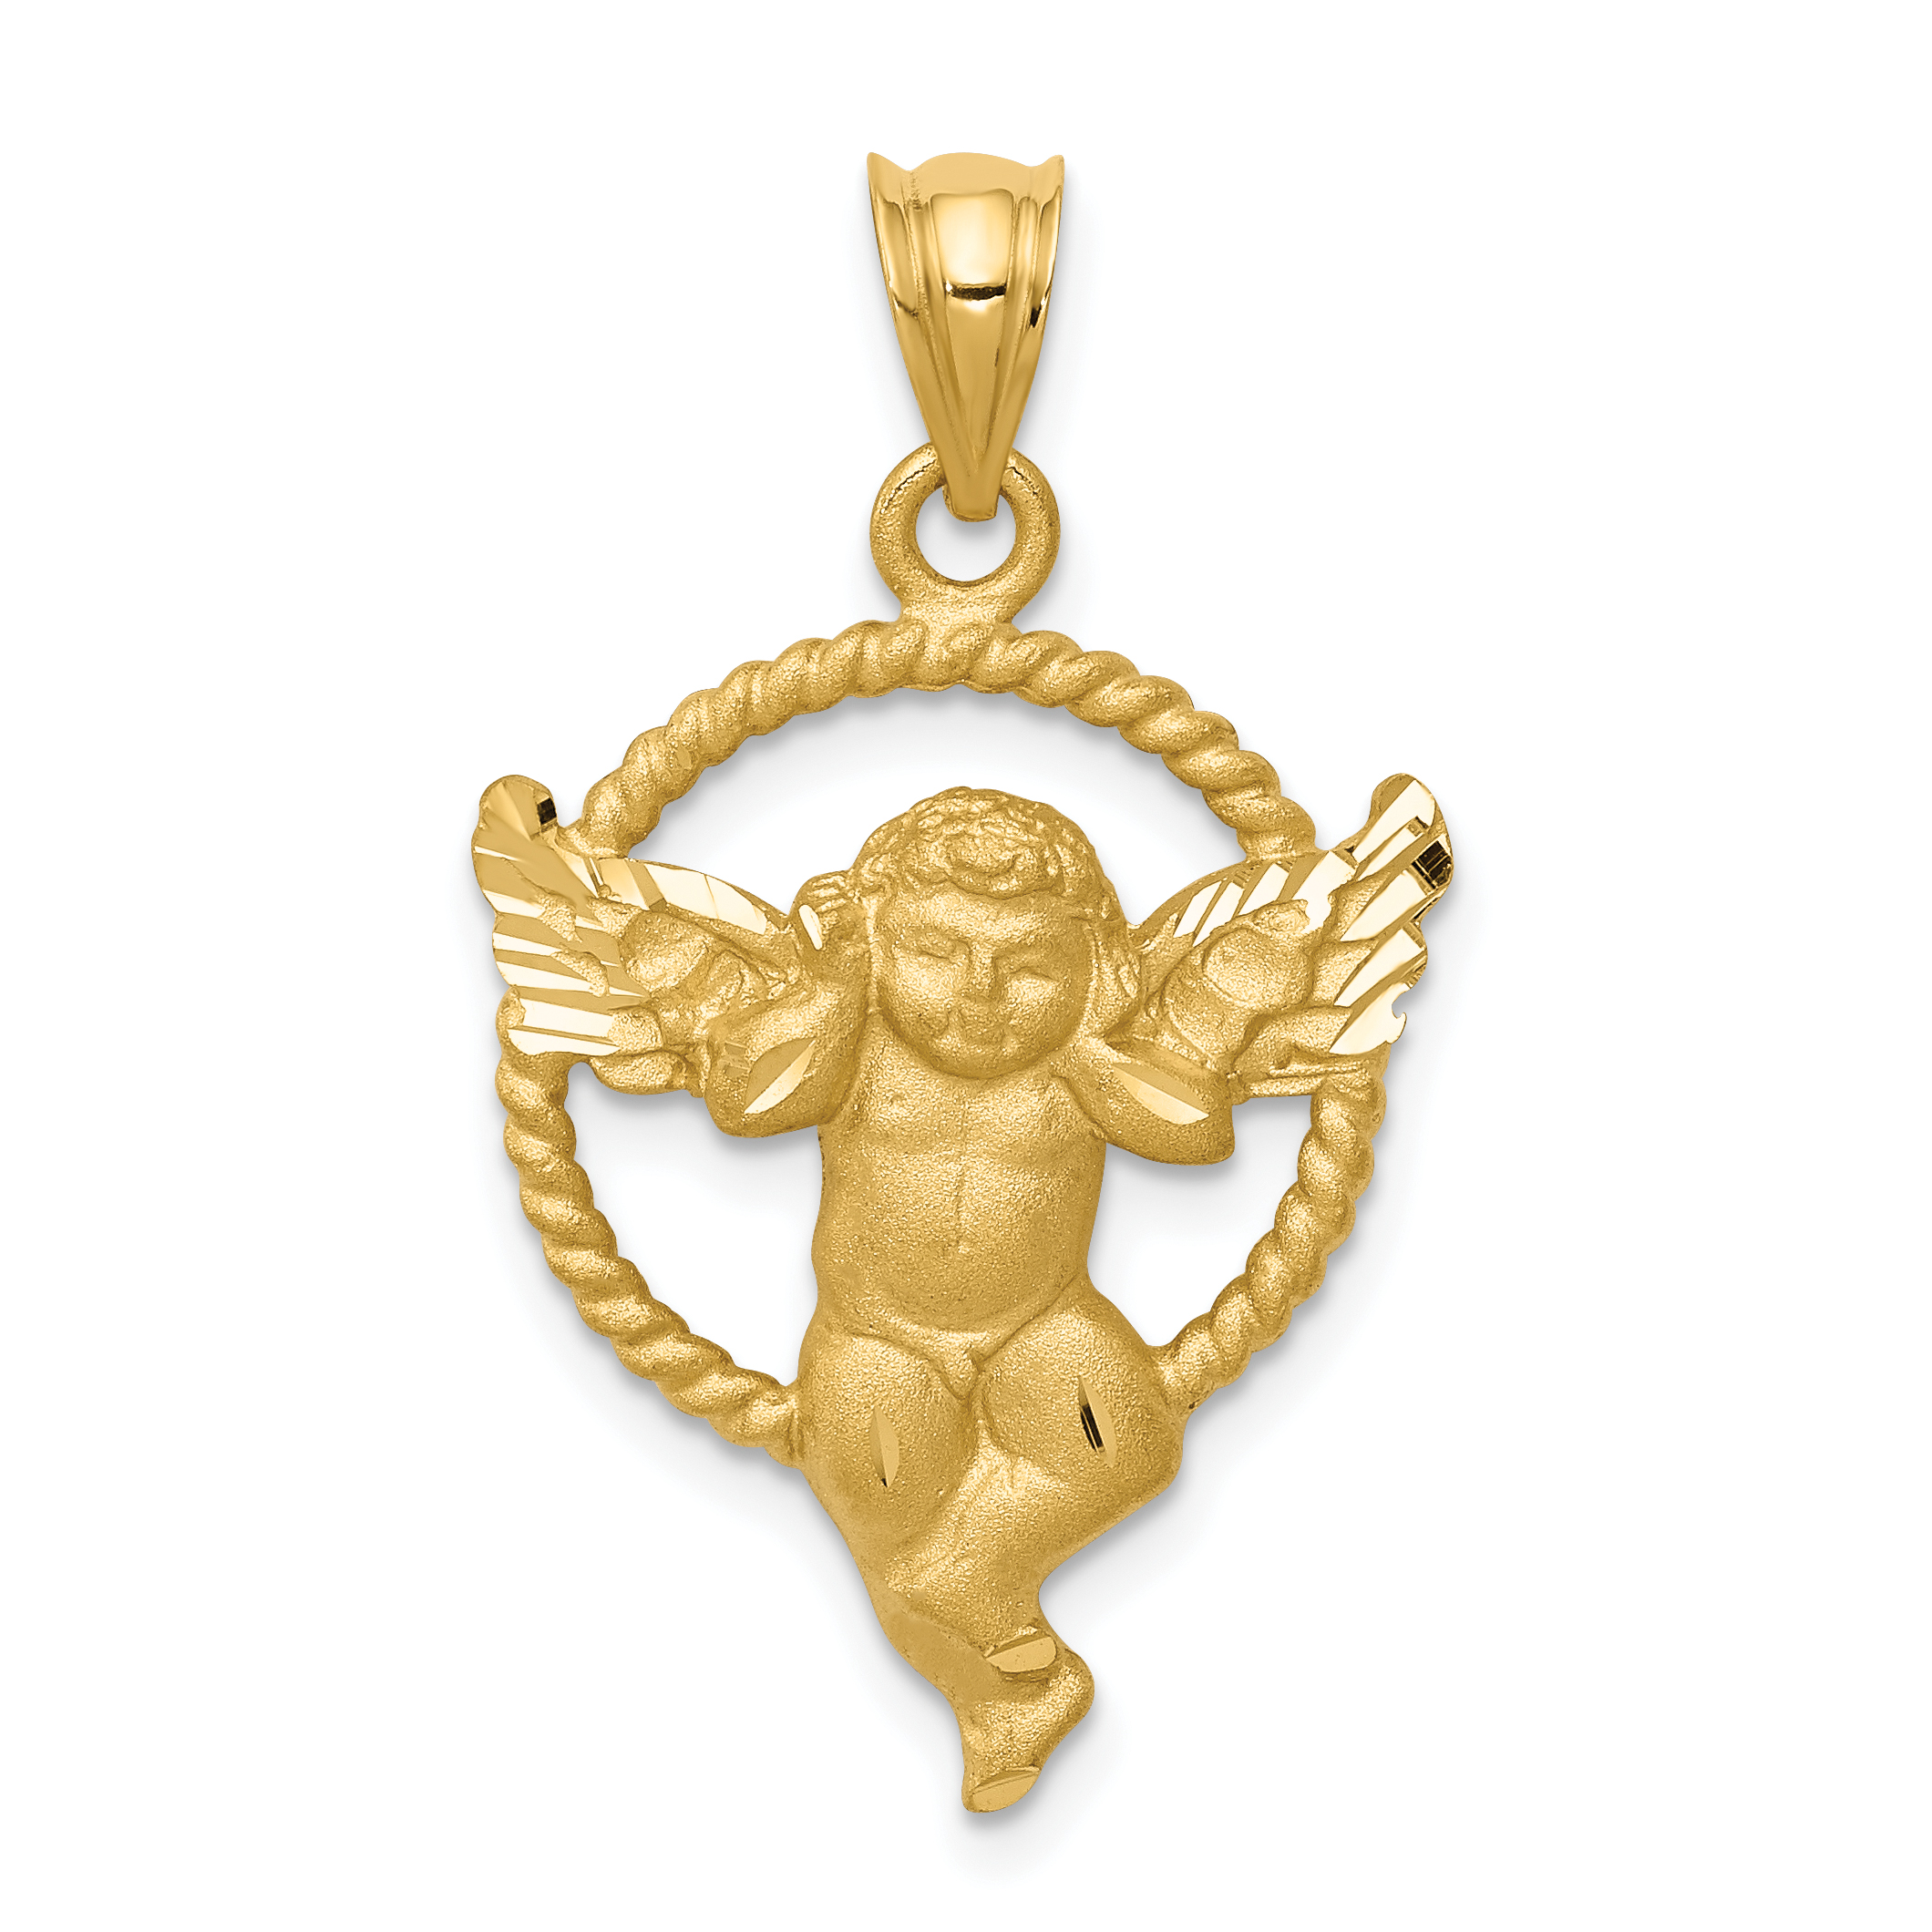 14k Satin Angel in Circle Pendant. Weight: 2.41, Length: 31, Width: 18